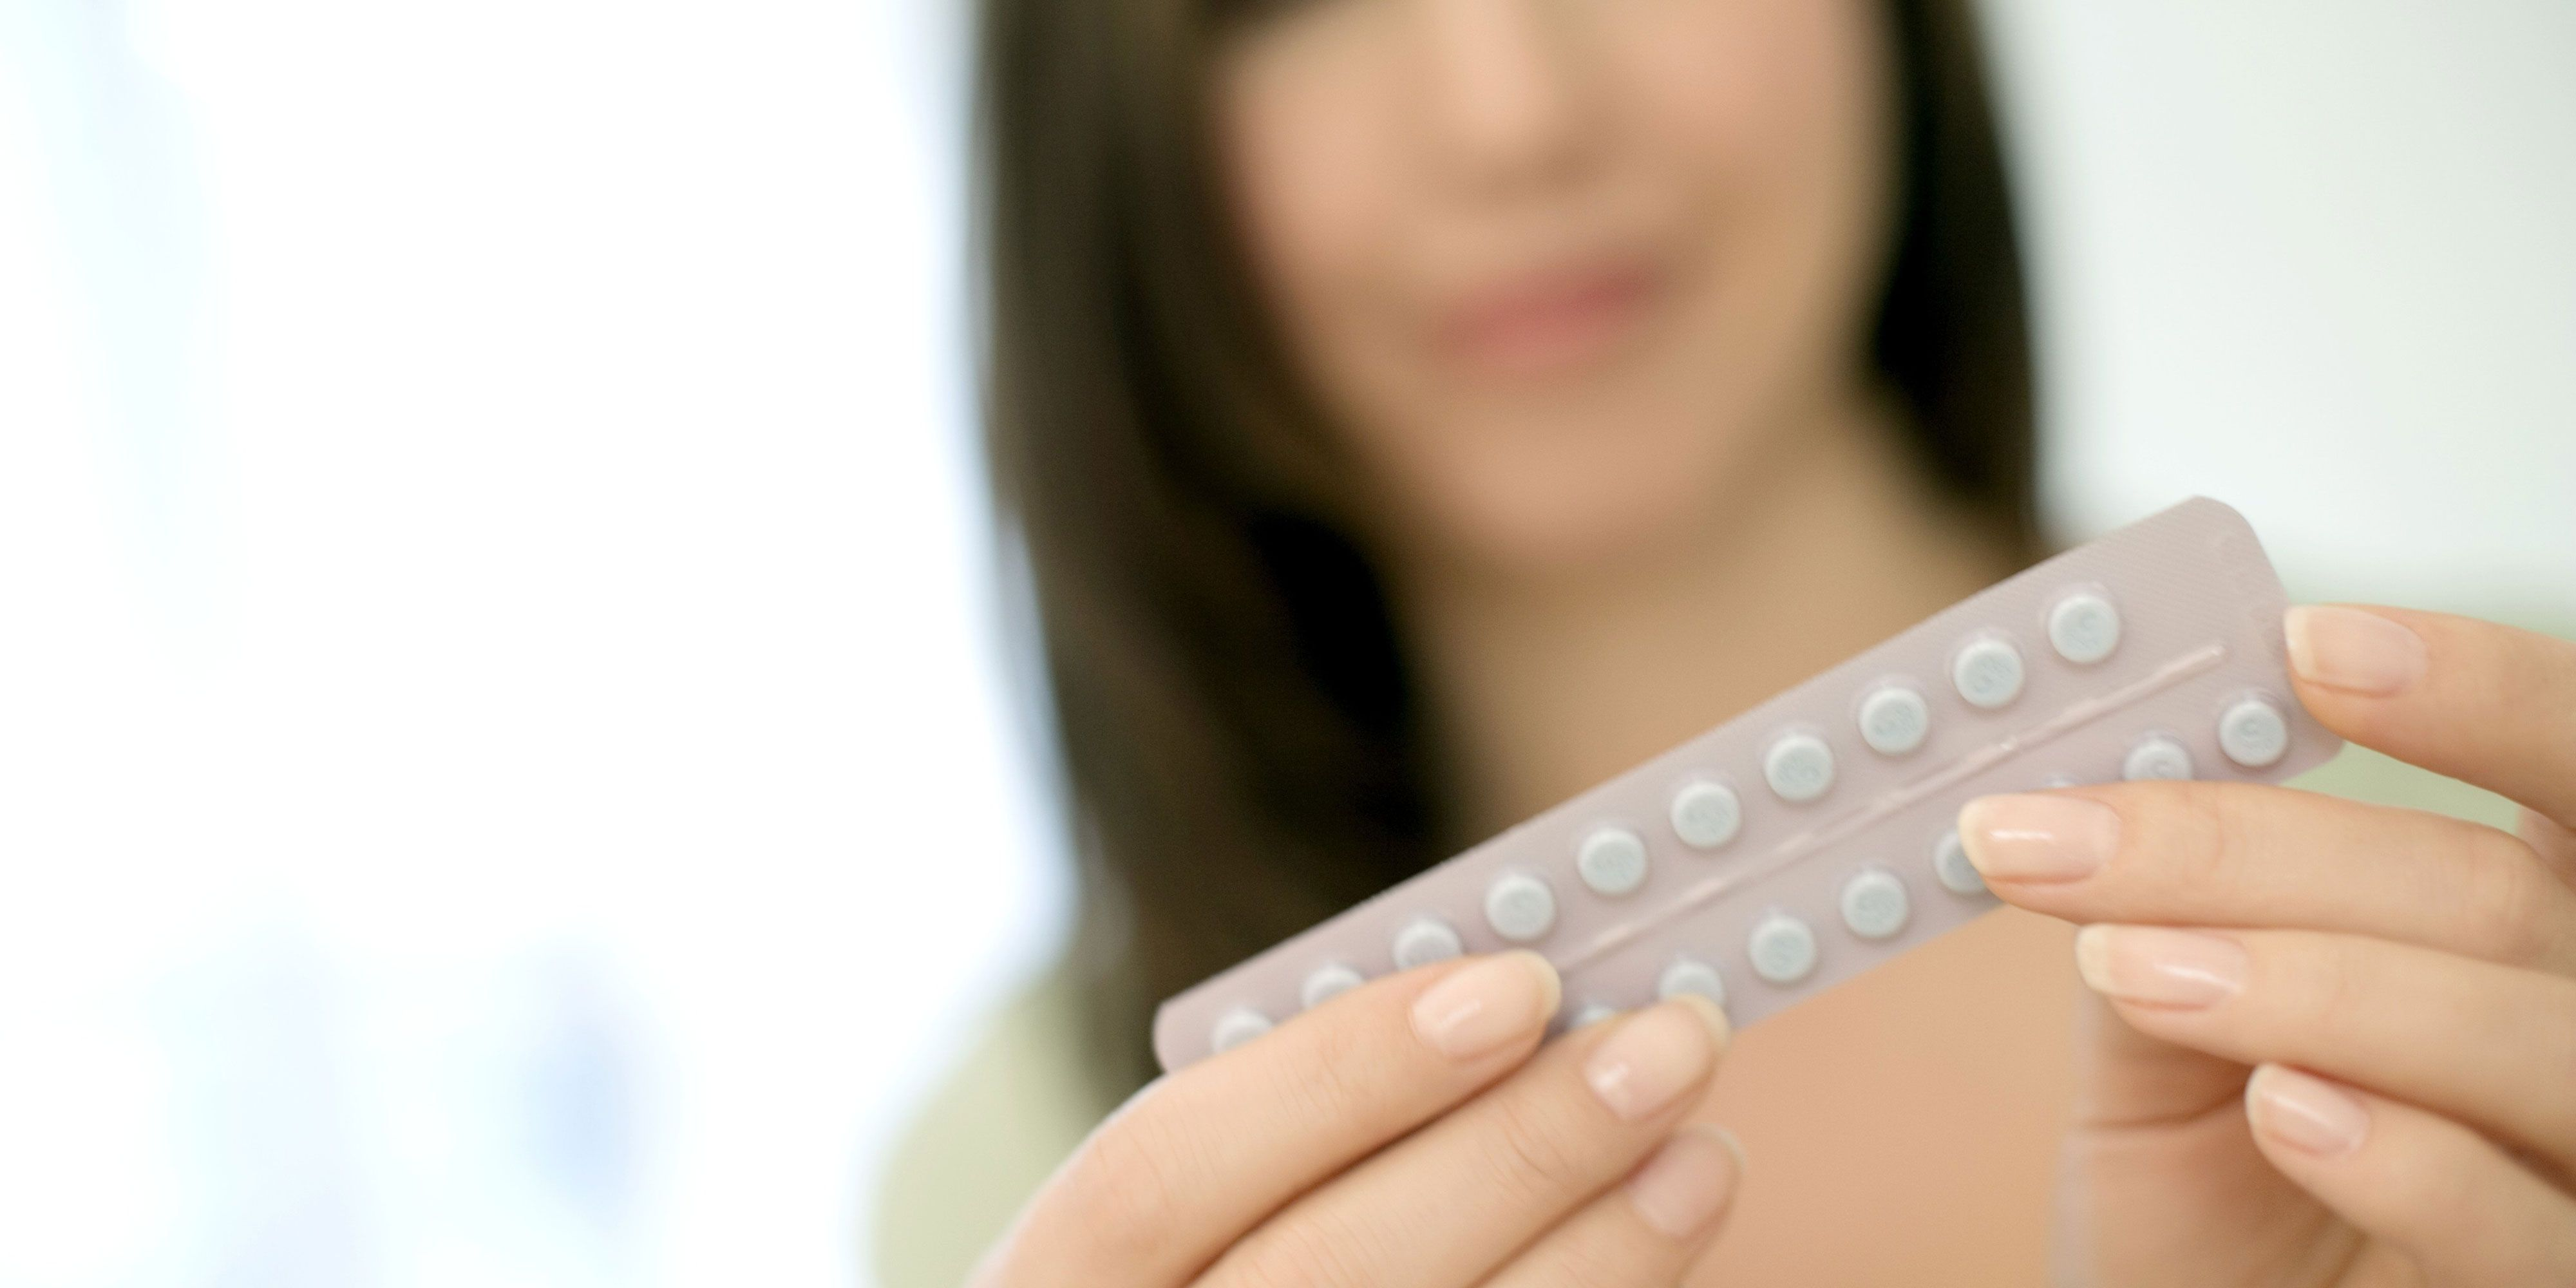 How long to wait after taking the pill before sex